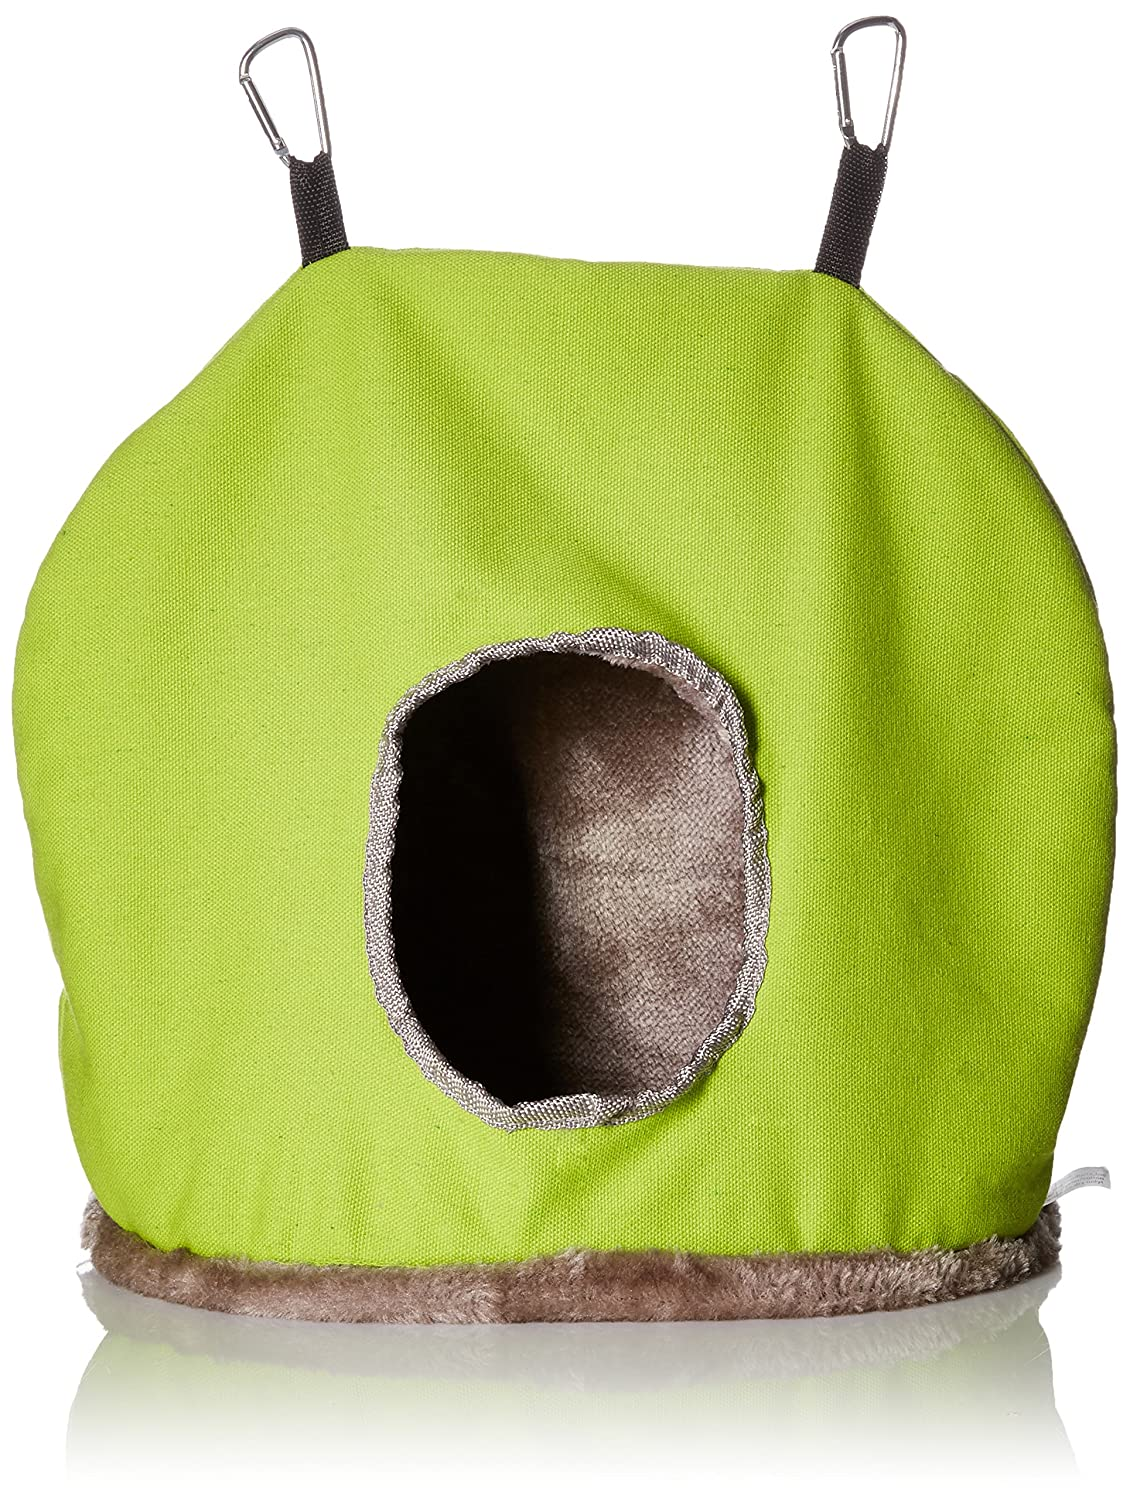 Snuggle Sack Jumbo Prevue Pet Products 60001165